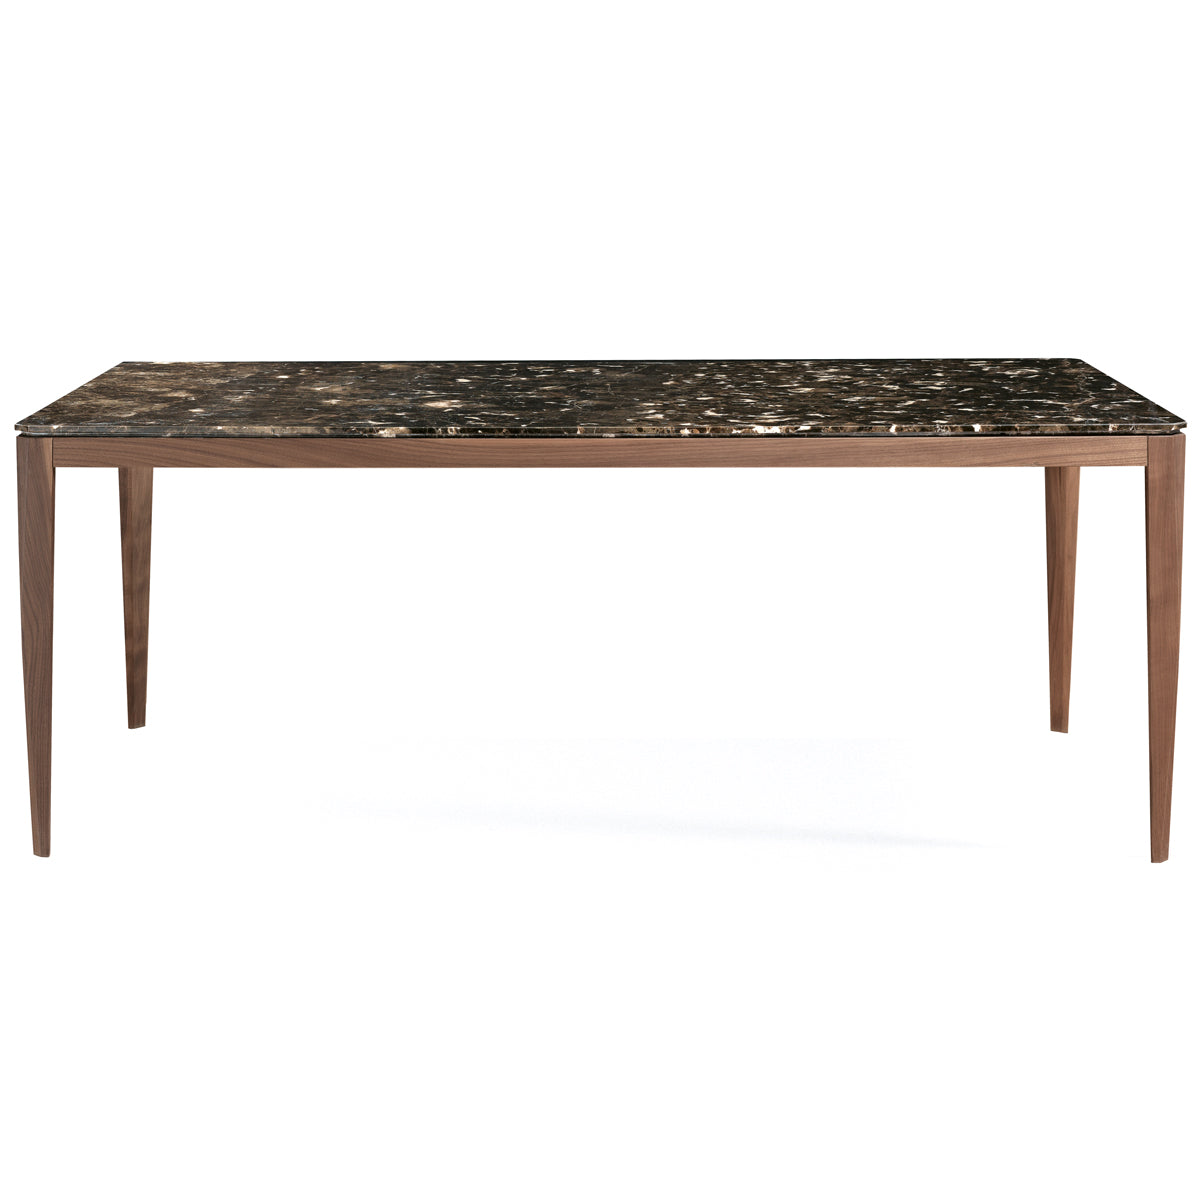 e9caf8afe5a0d Cut Marble Dining Table by Pacini e Cappellini